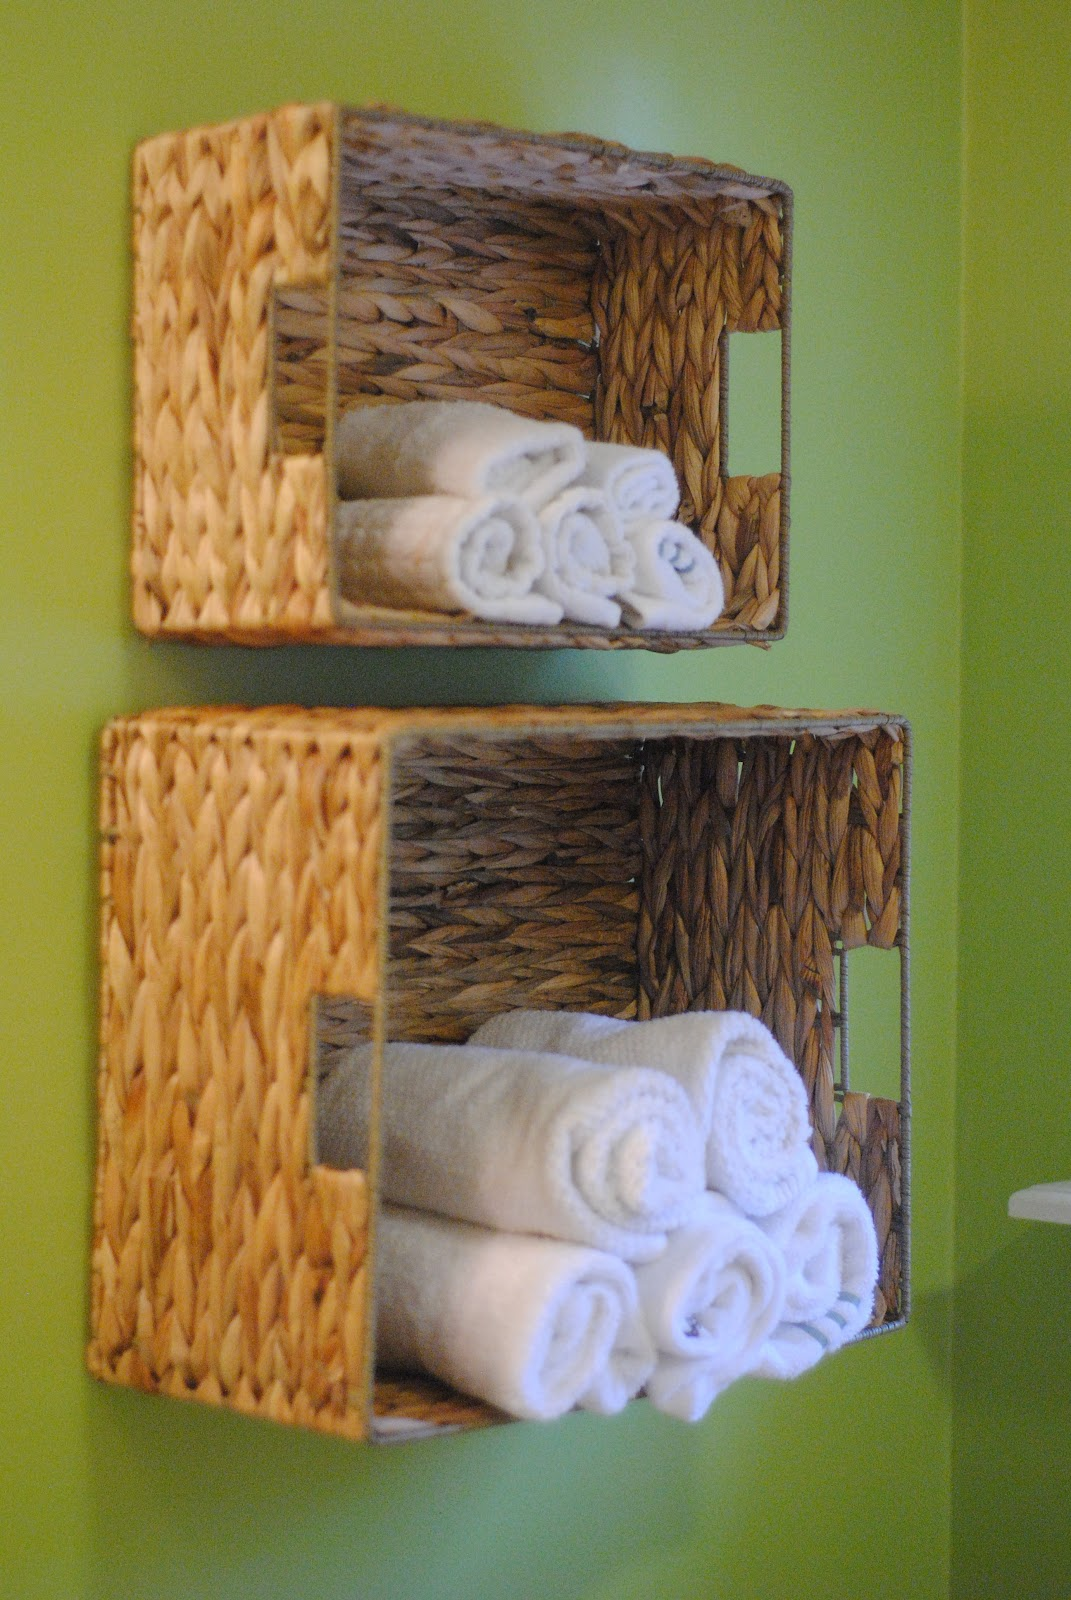 Diy bathroom towel storage in under 5 minutes making - Rangement petite salle de bain ...